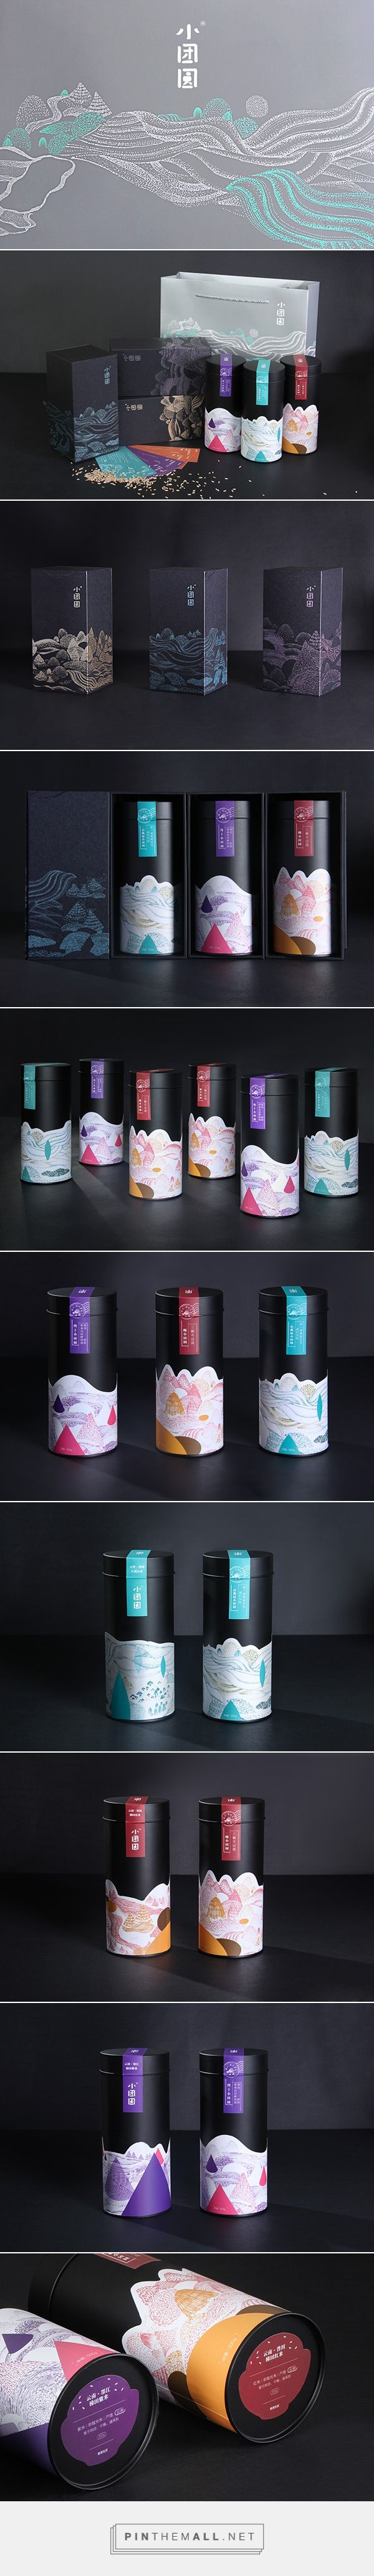 Xiaotuanyuan (I believe it's tea oil, rice and salt -please feel free to correct me) designed by Yi Mi Xiaoxin. Pin curated by #SFields99 #packaging #design